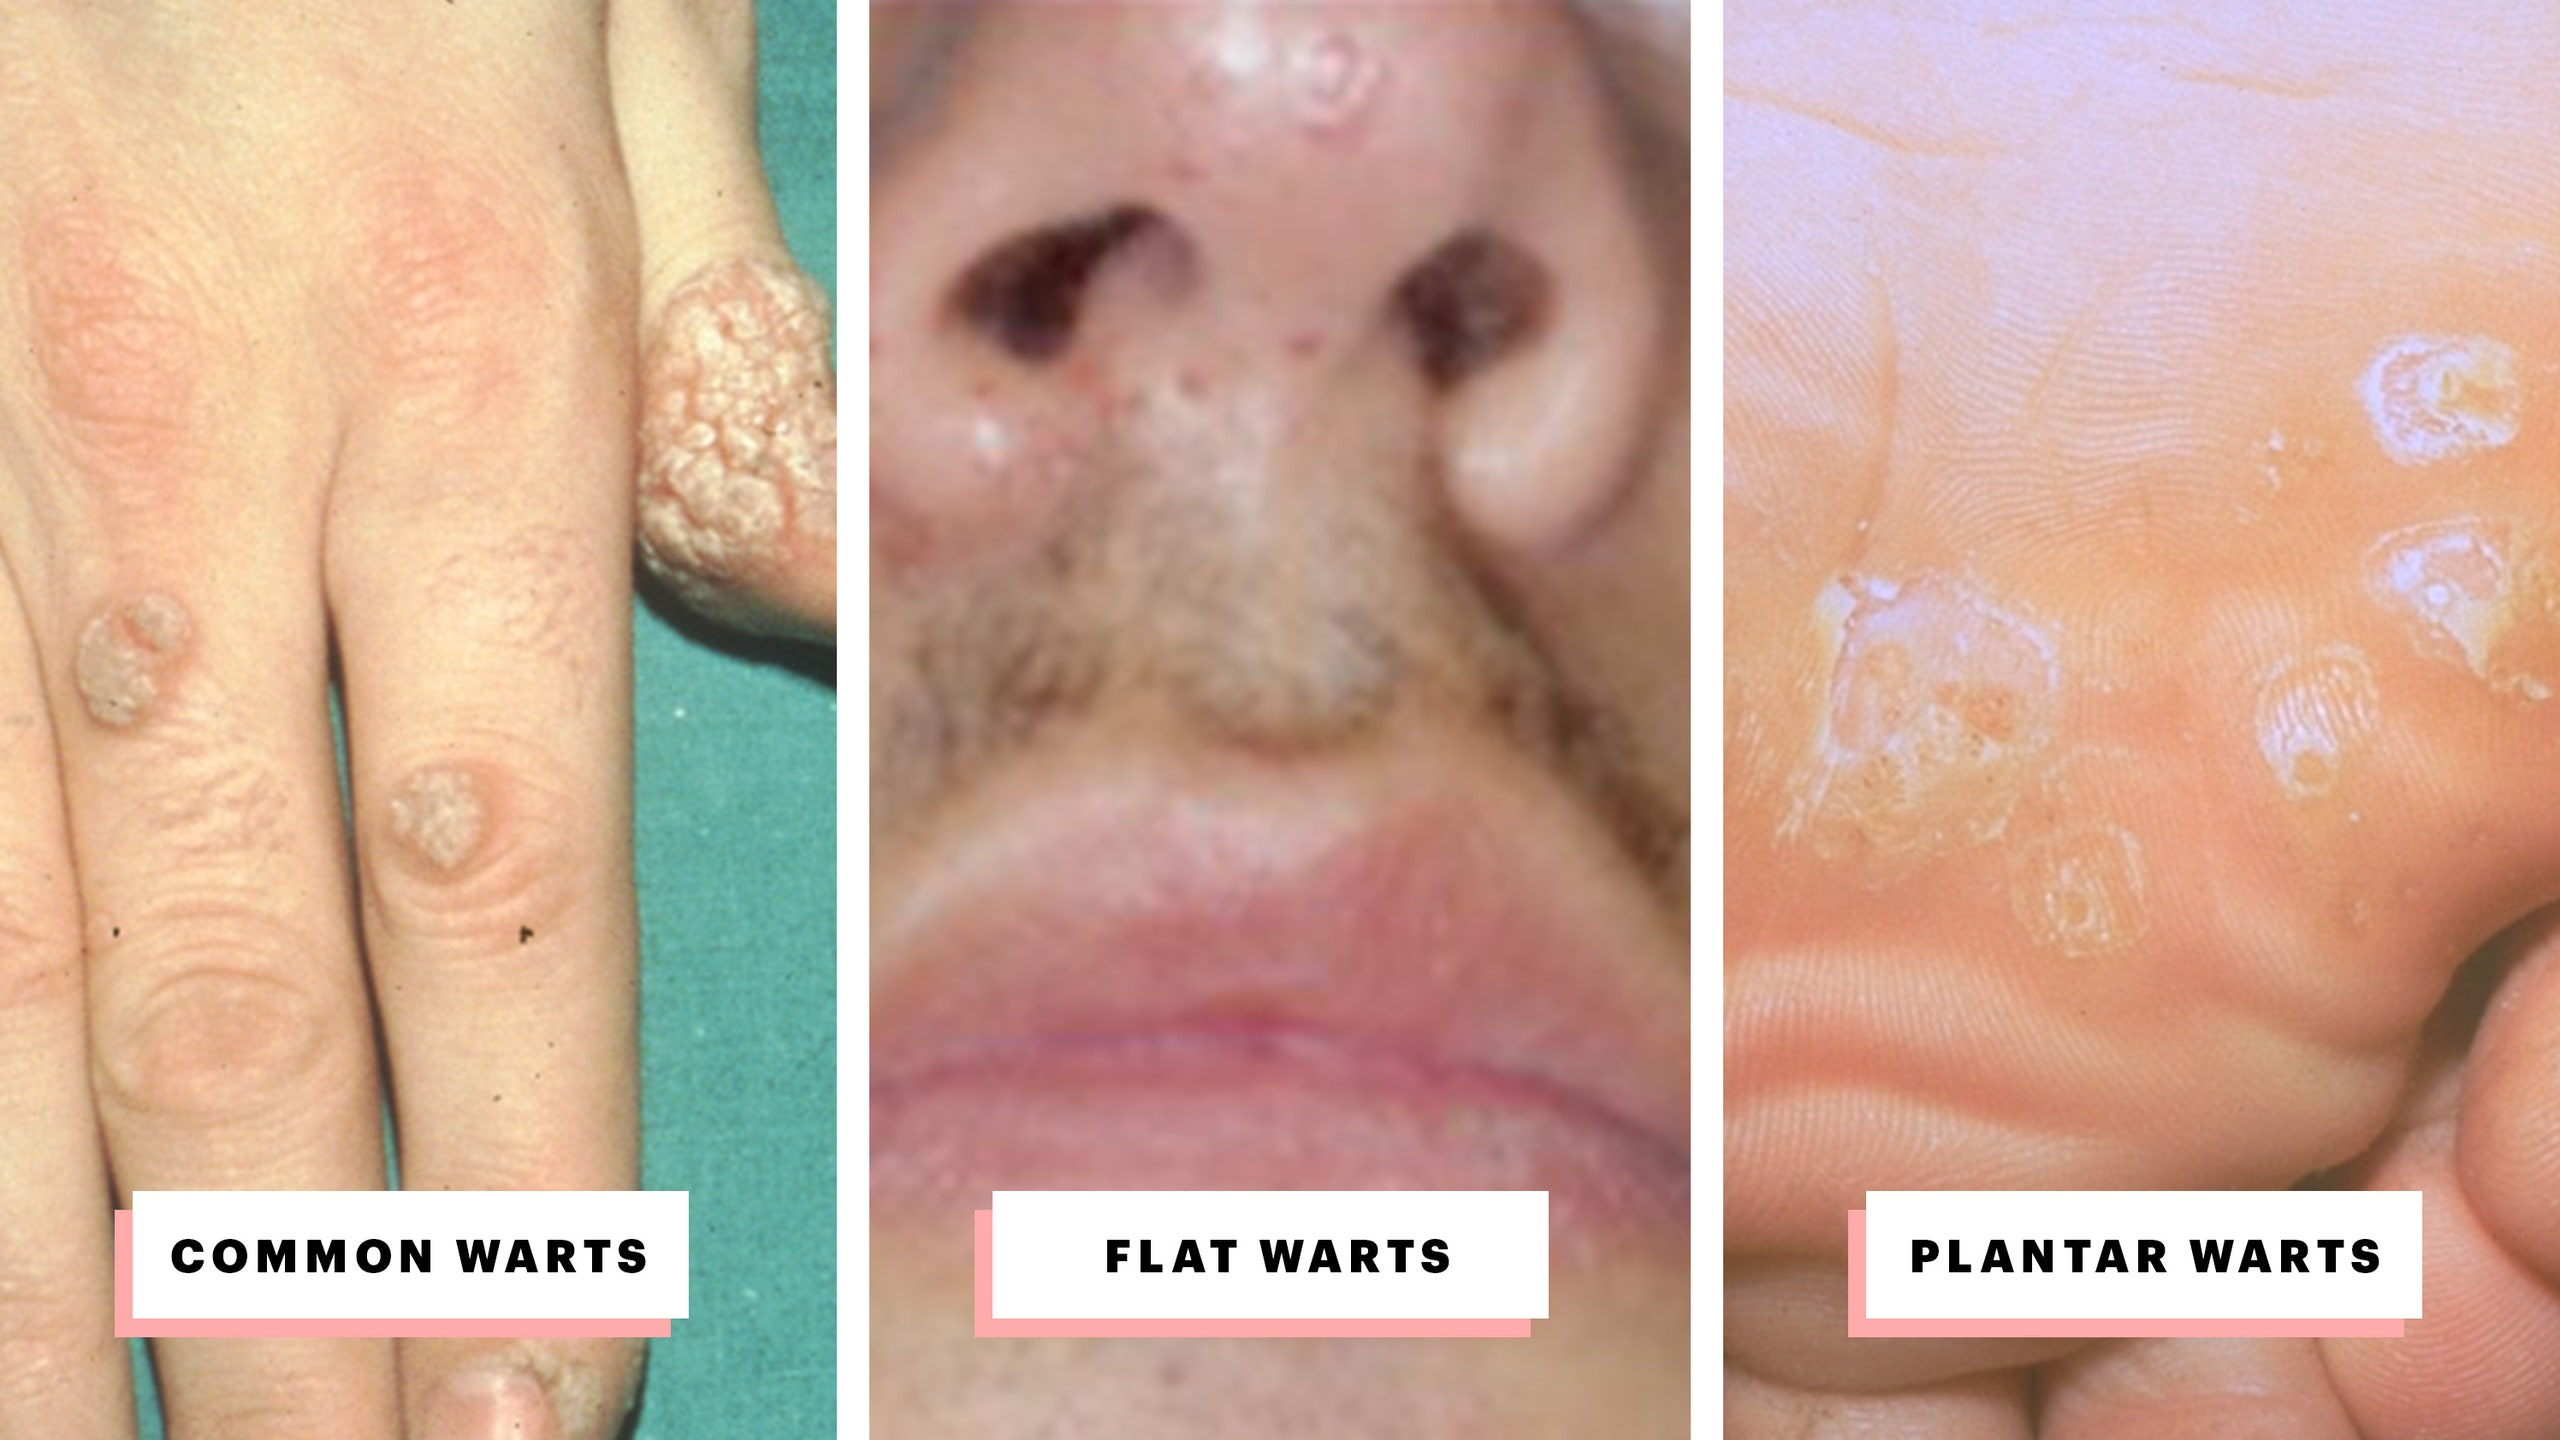 hpv warts laser treatment confluent and reticulated papillomatosis itchy